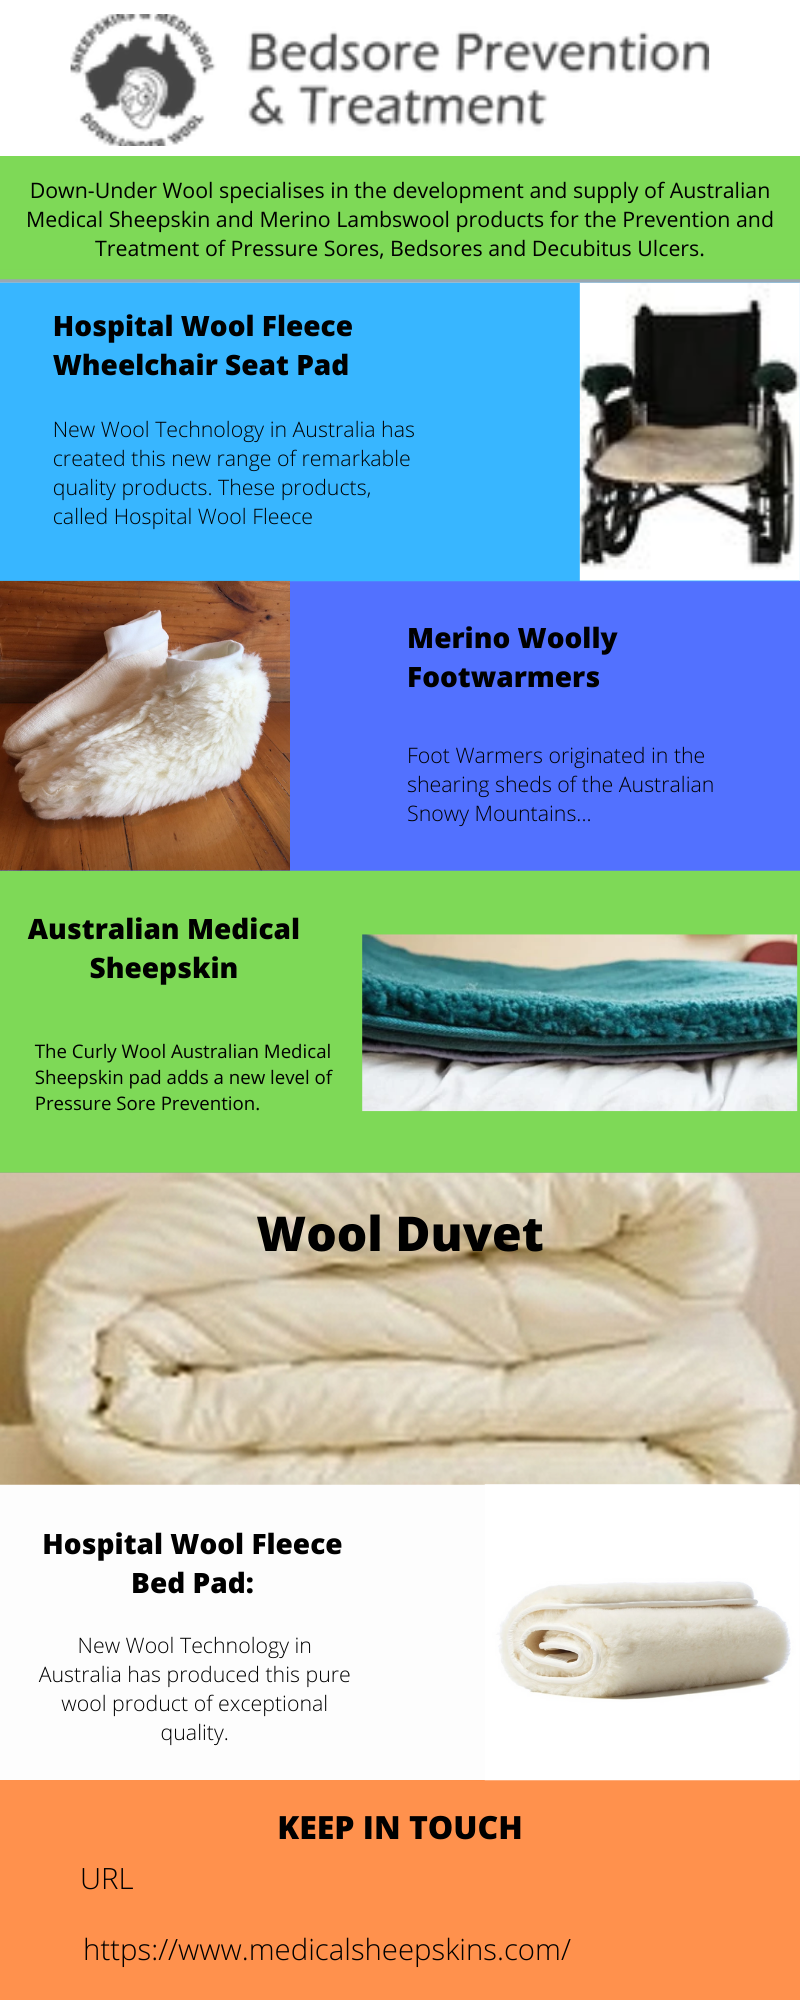 Australian Medical Sheepskin AS4480.1 DownUnder Wool in